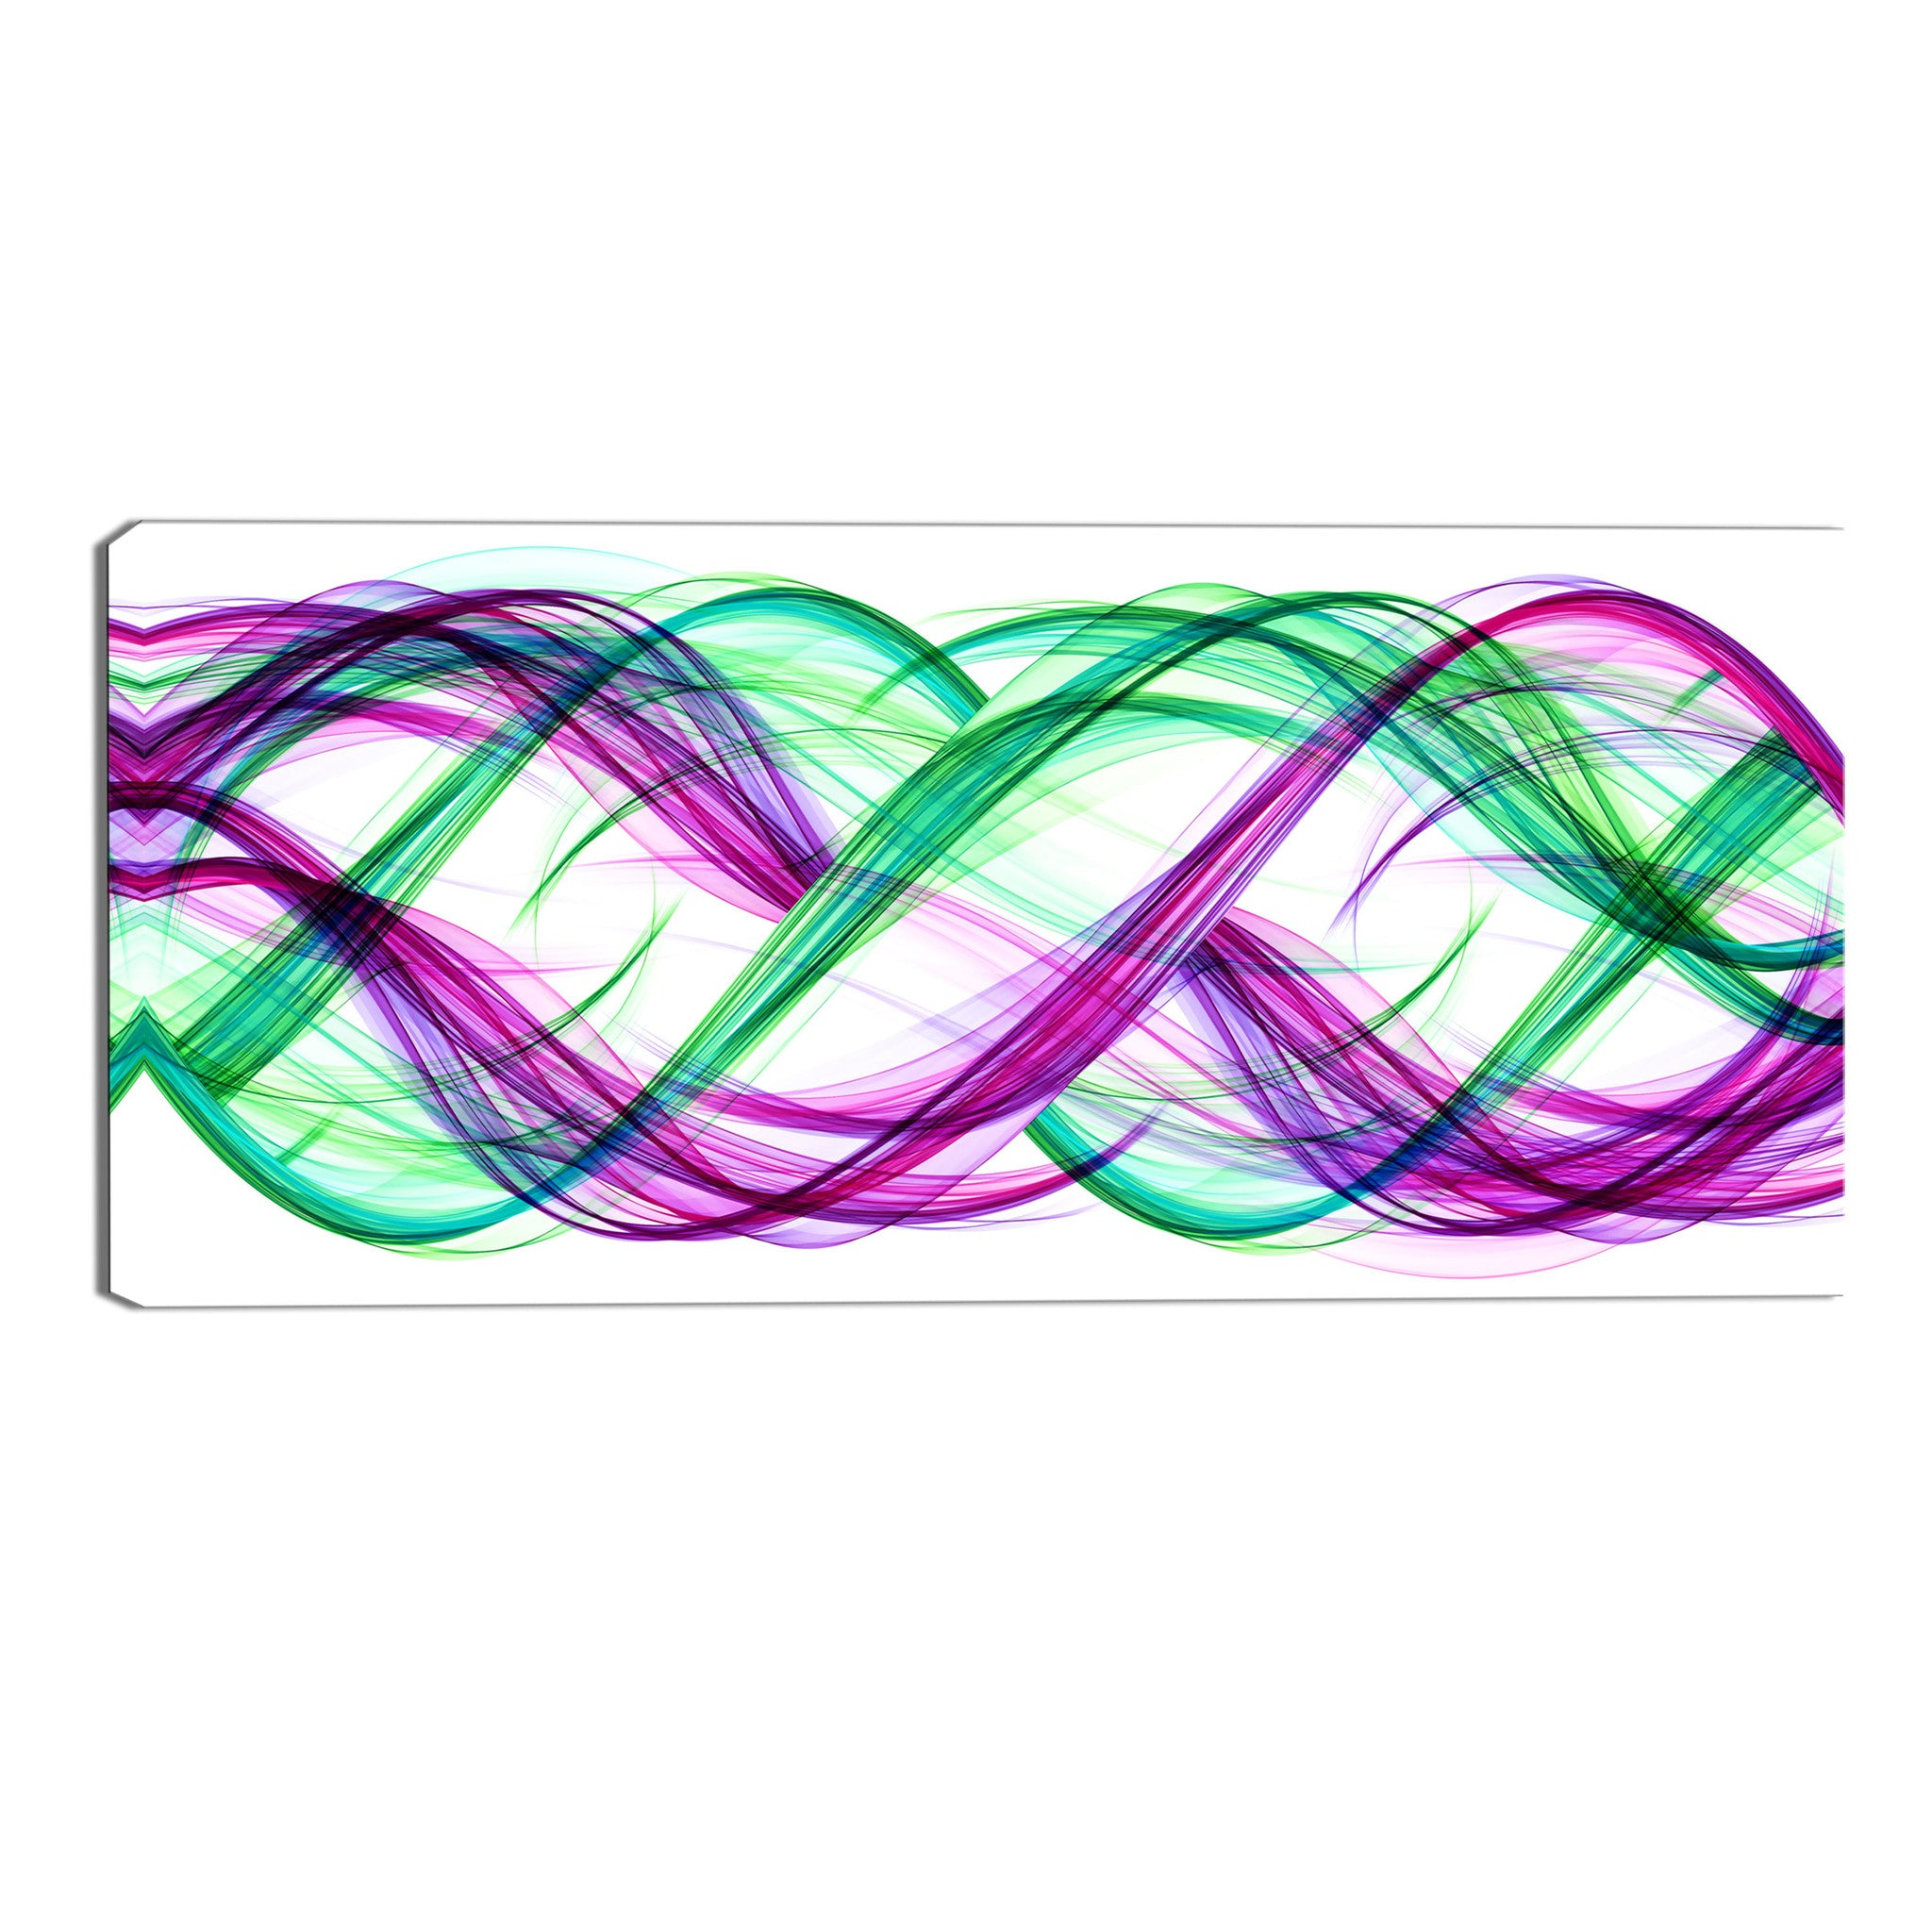 Green and Purple Abstract Loops Canvas Wall Art Print